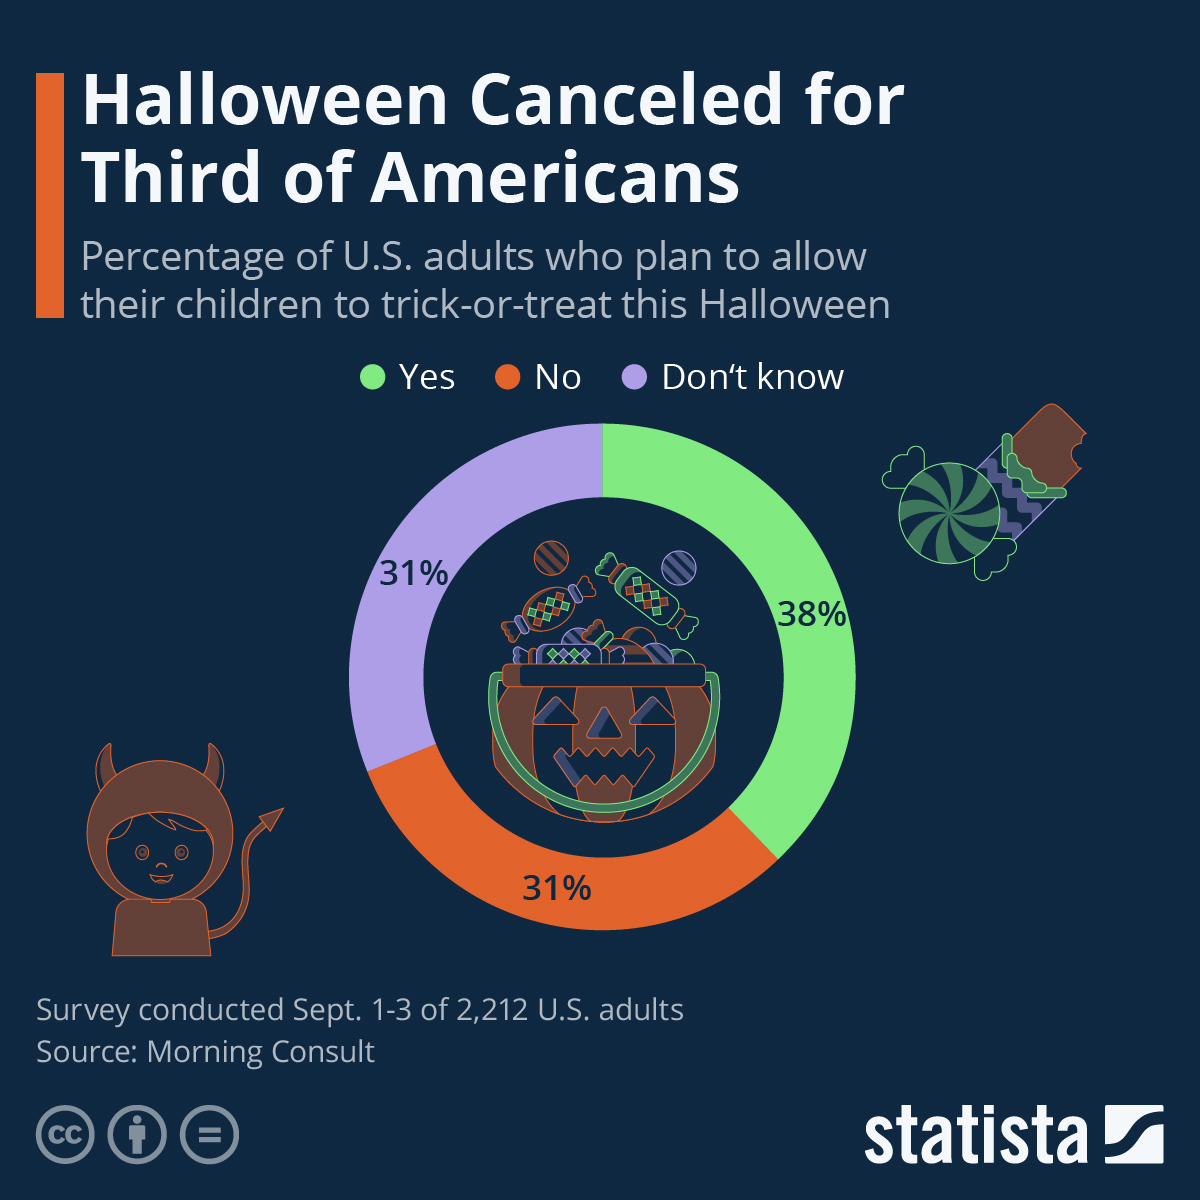 Halloween Canceled for Third of Americans